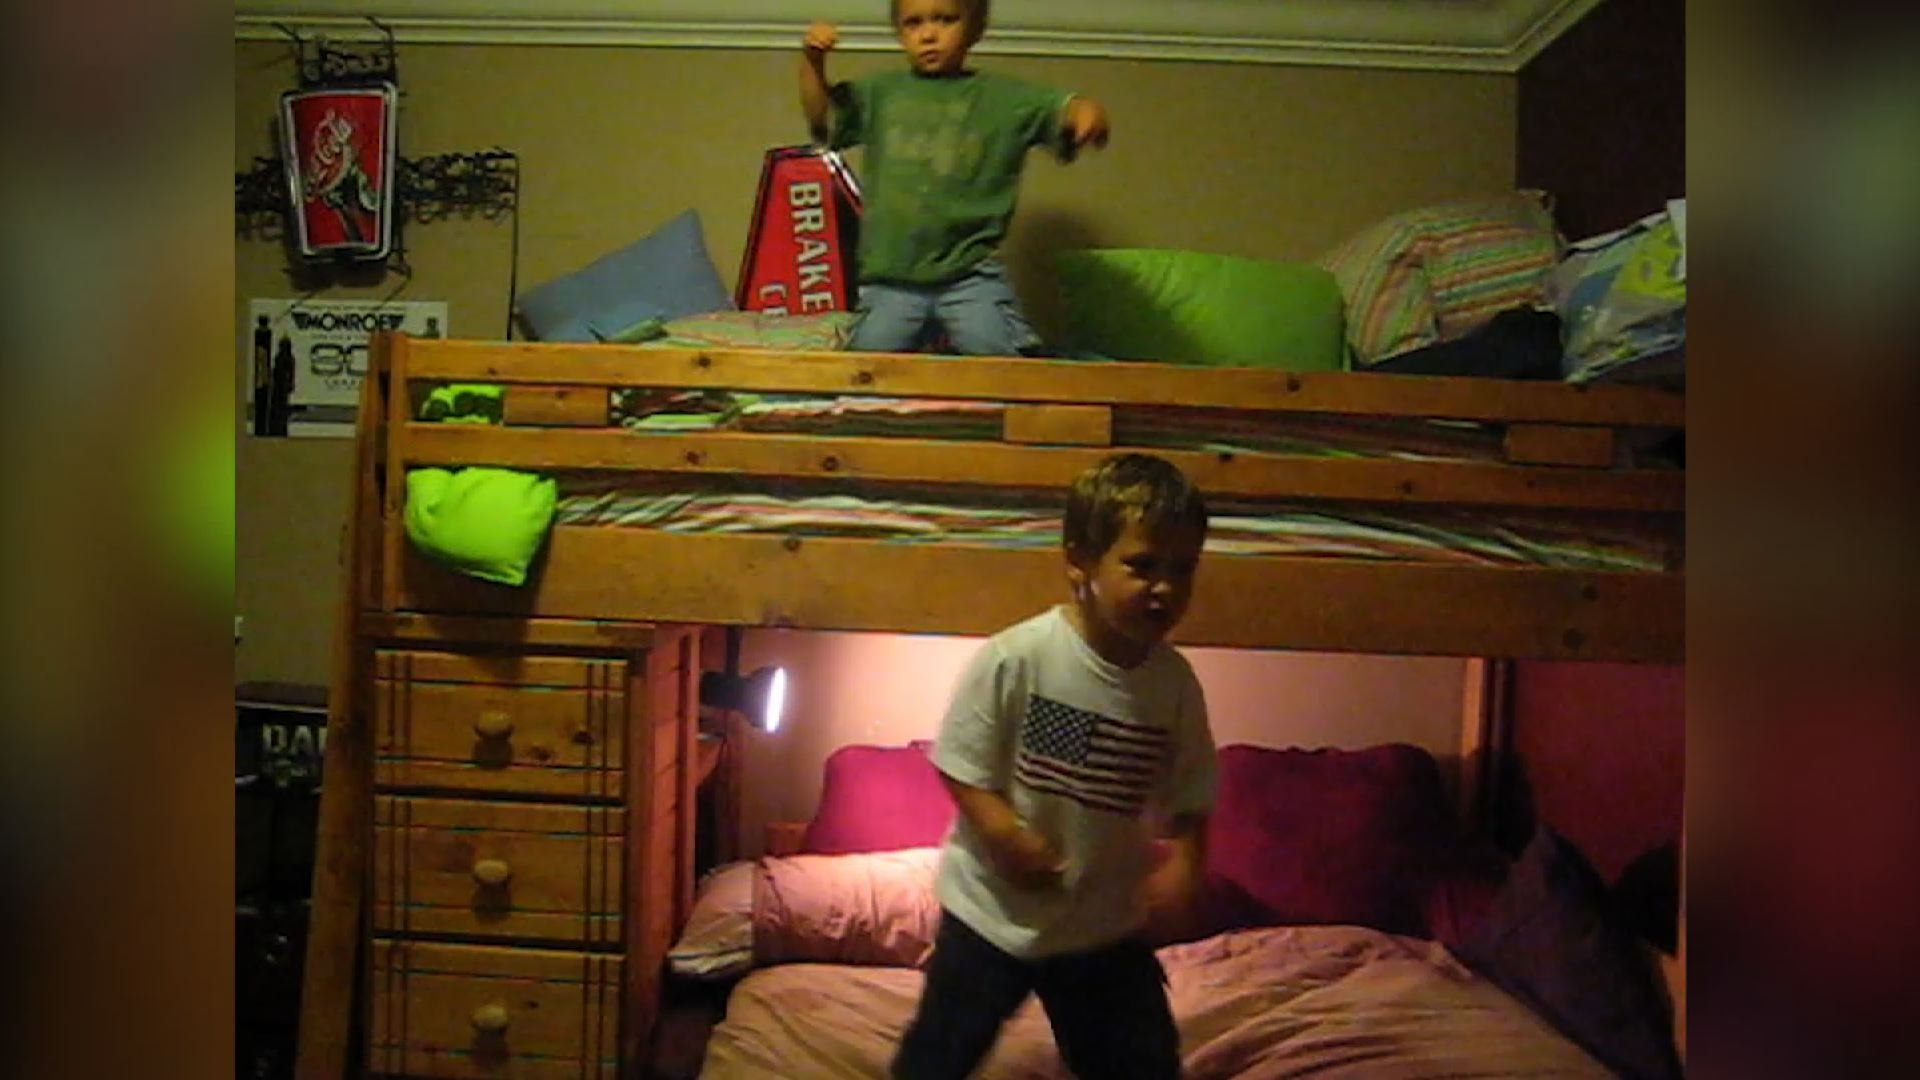 Cute Kids Rock Out To Rap Music